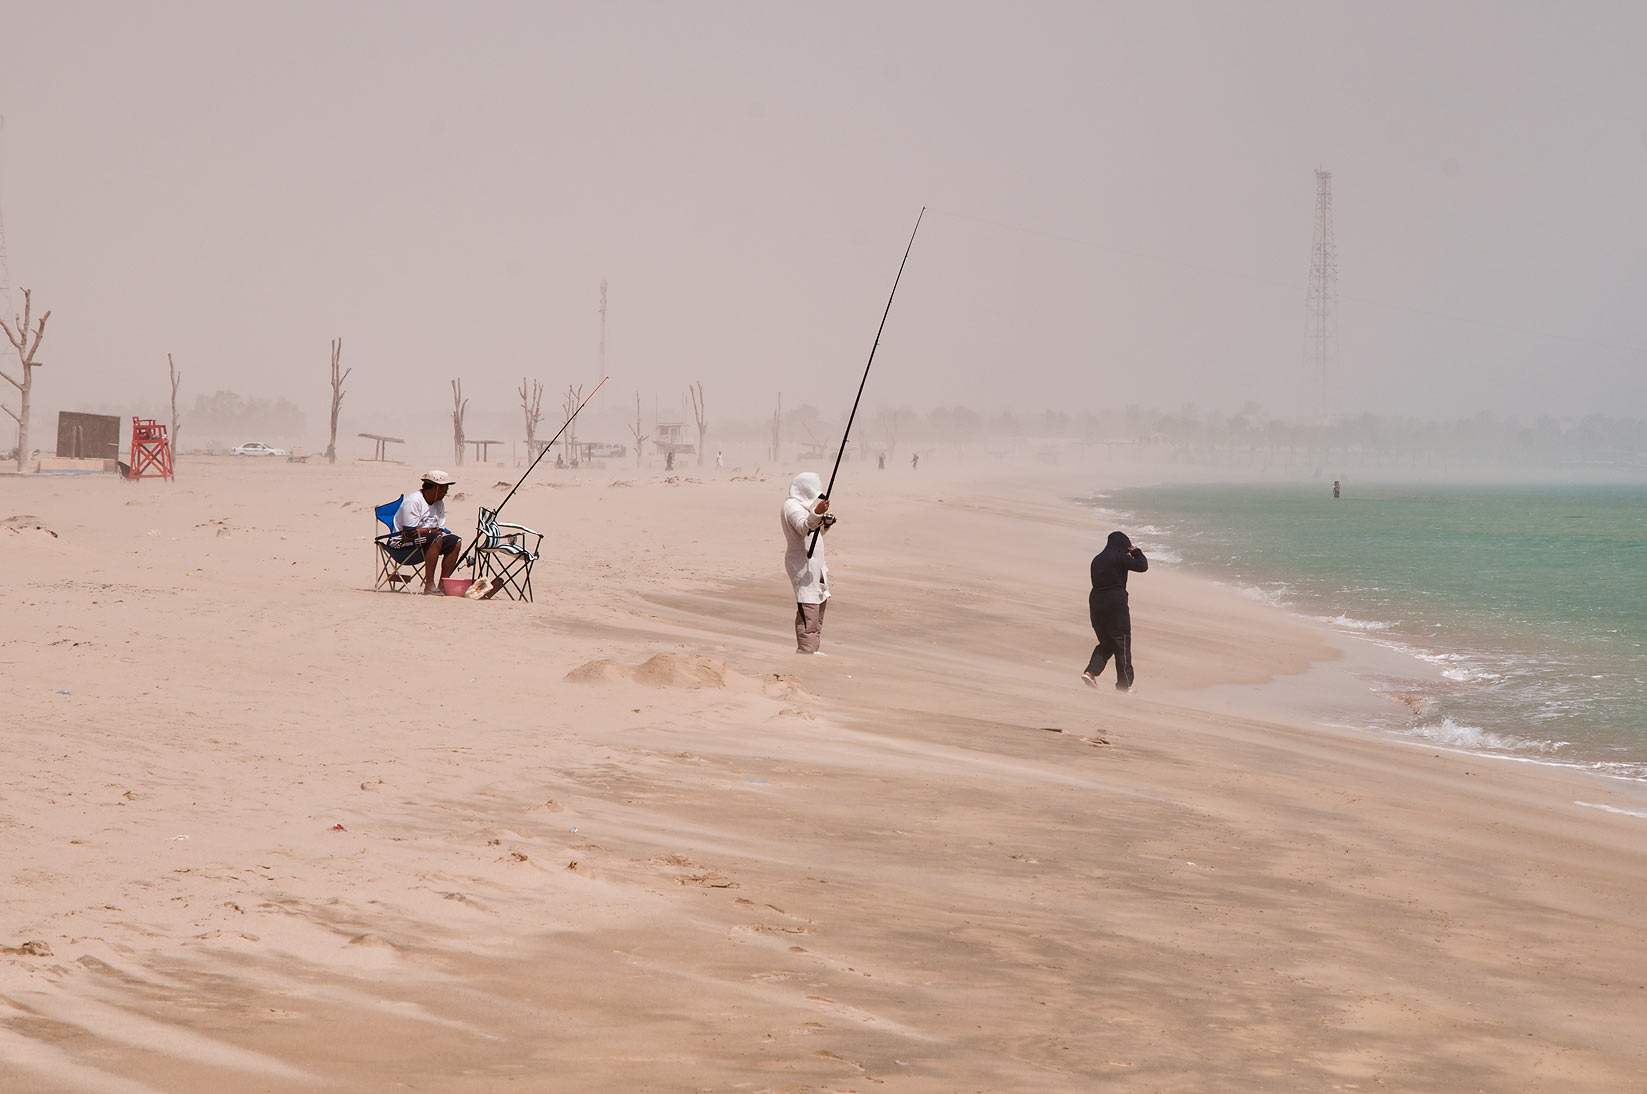 Mesaieed beach during sand storm. Qatar